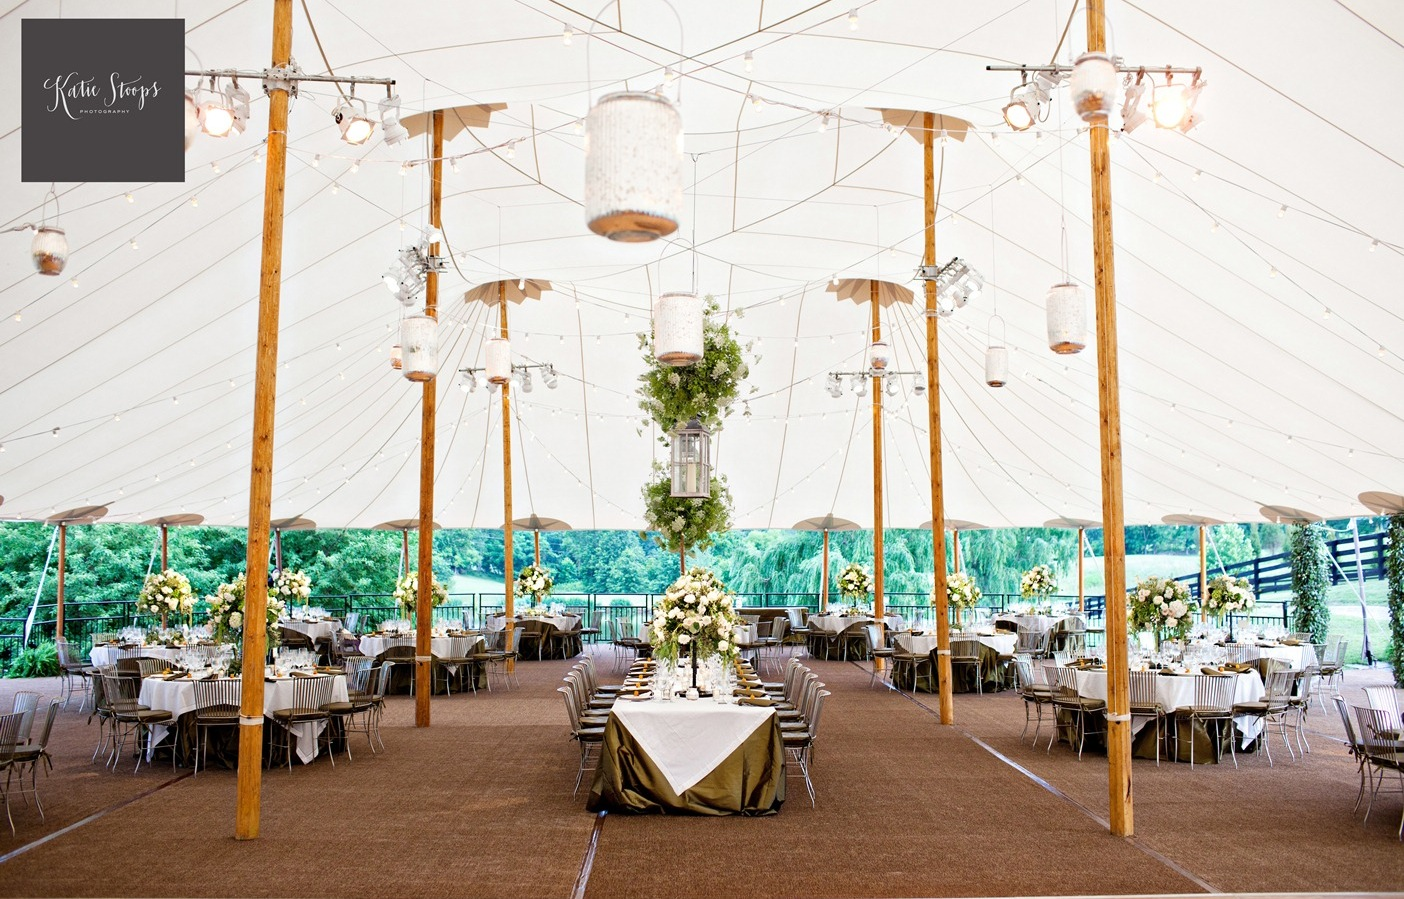 Rent a tent for outdoor weddings for Images of outdoor weddings